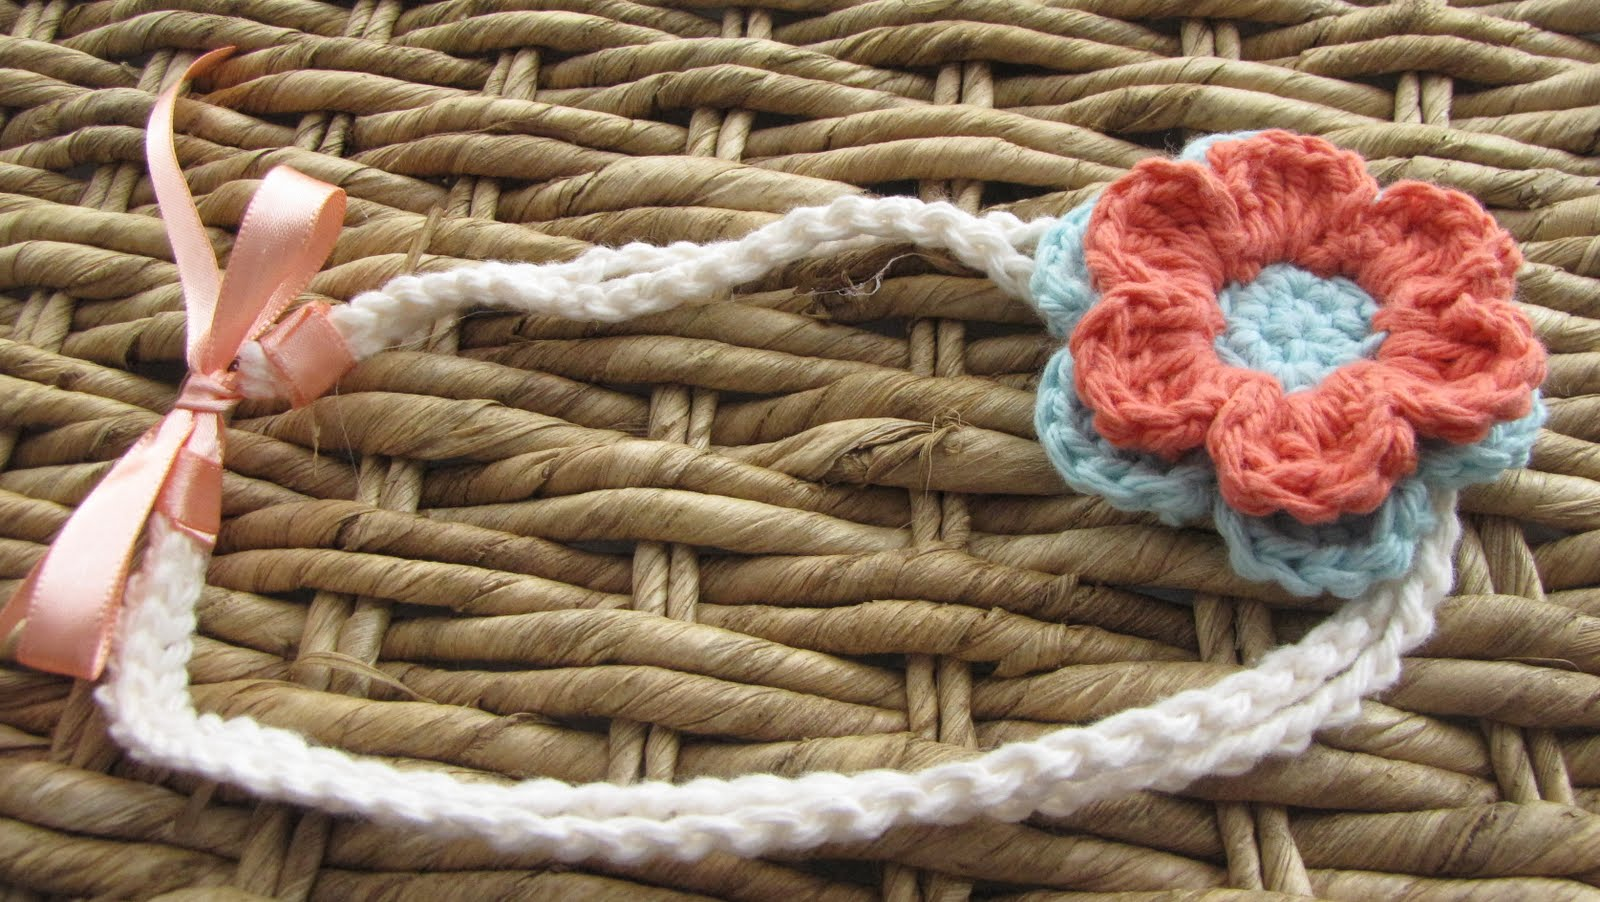 Crochet Headband With Flower Pattern Tutorial : Stay-At-Home-Moms-of-Etsy: Tuesday Tutorial - Crochet ...